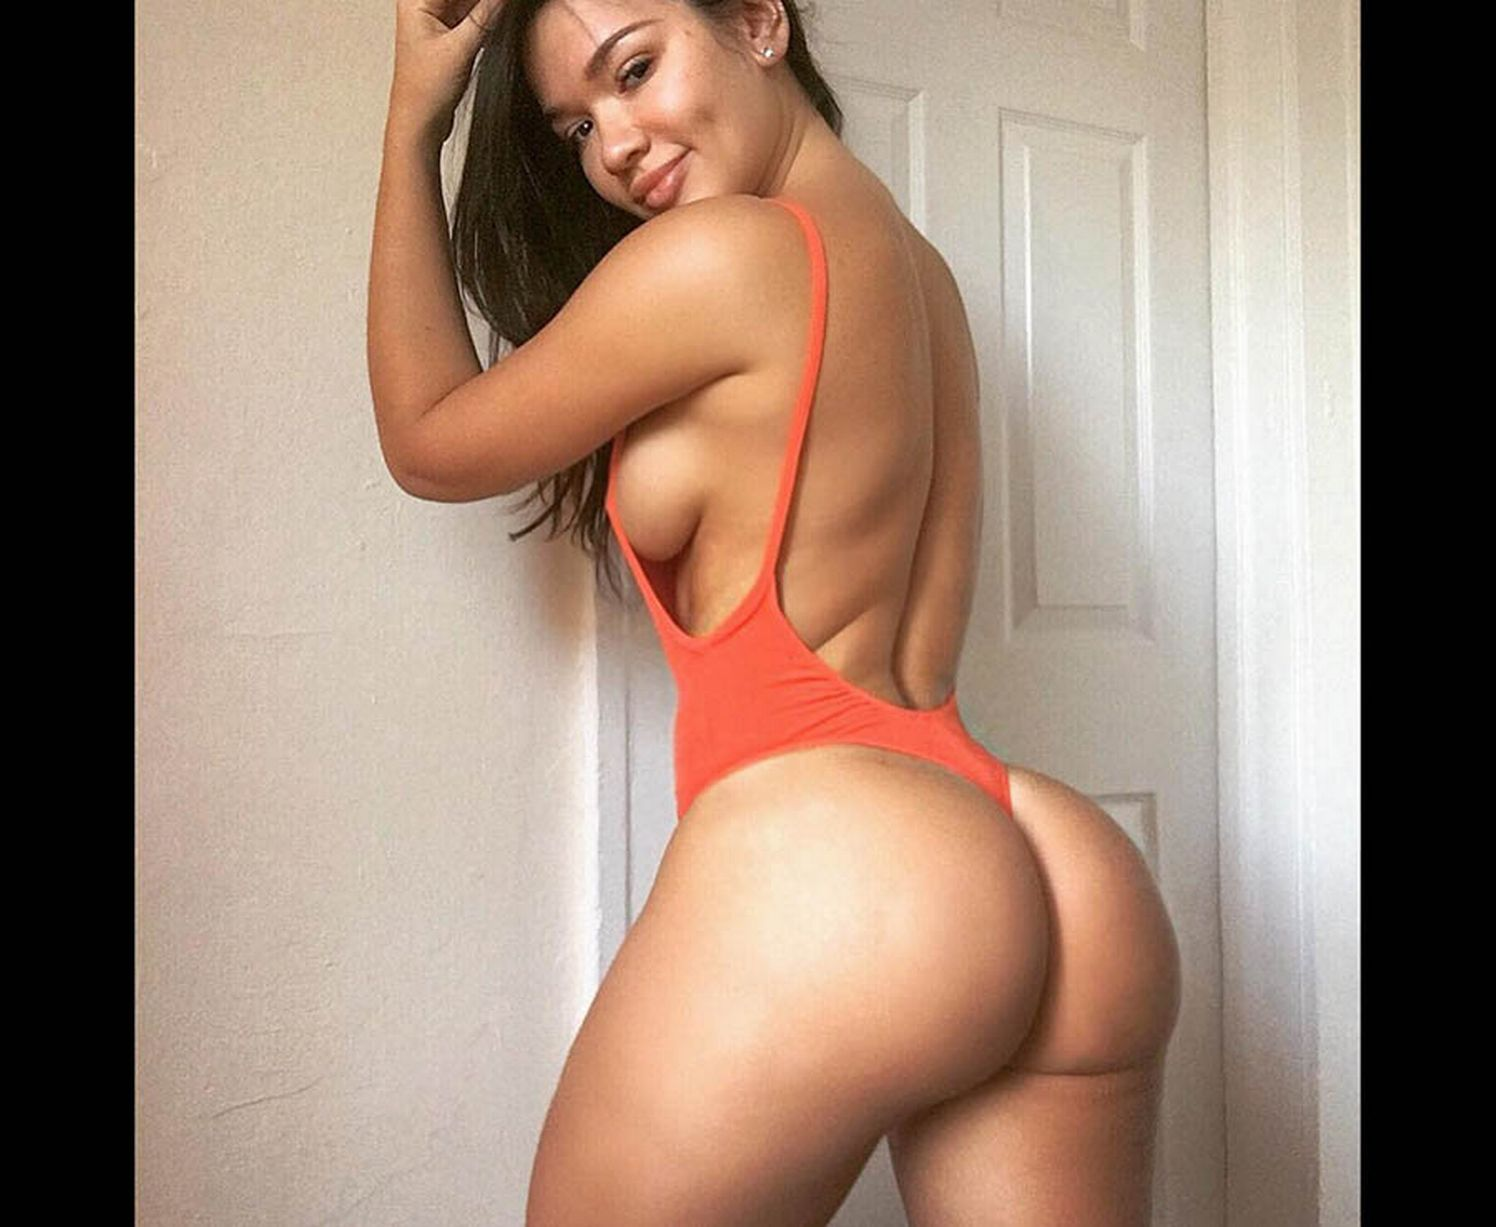 Genesis Lopez huge ass sexy body swimsuit - Genesis Lopez Onlyfans Nude Big Tits Perfect Ass Shower